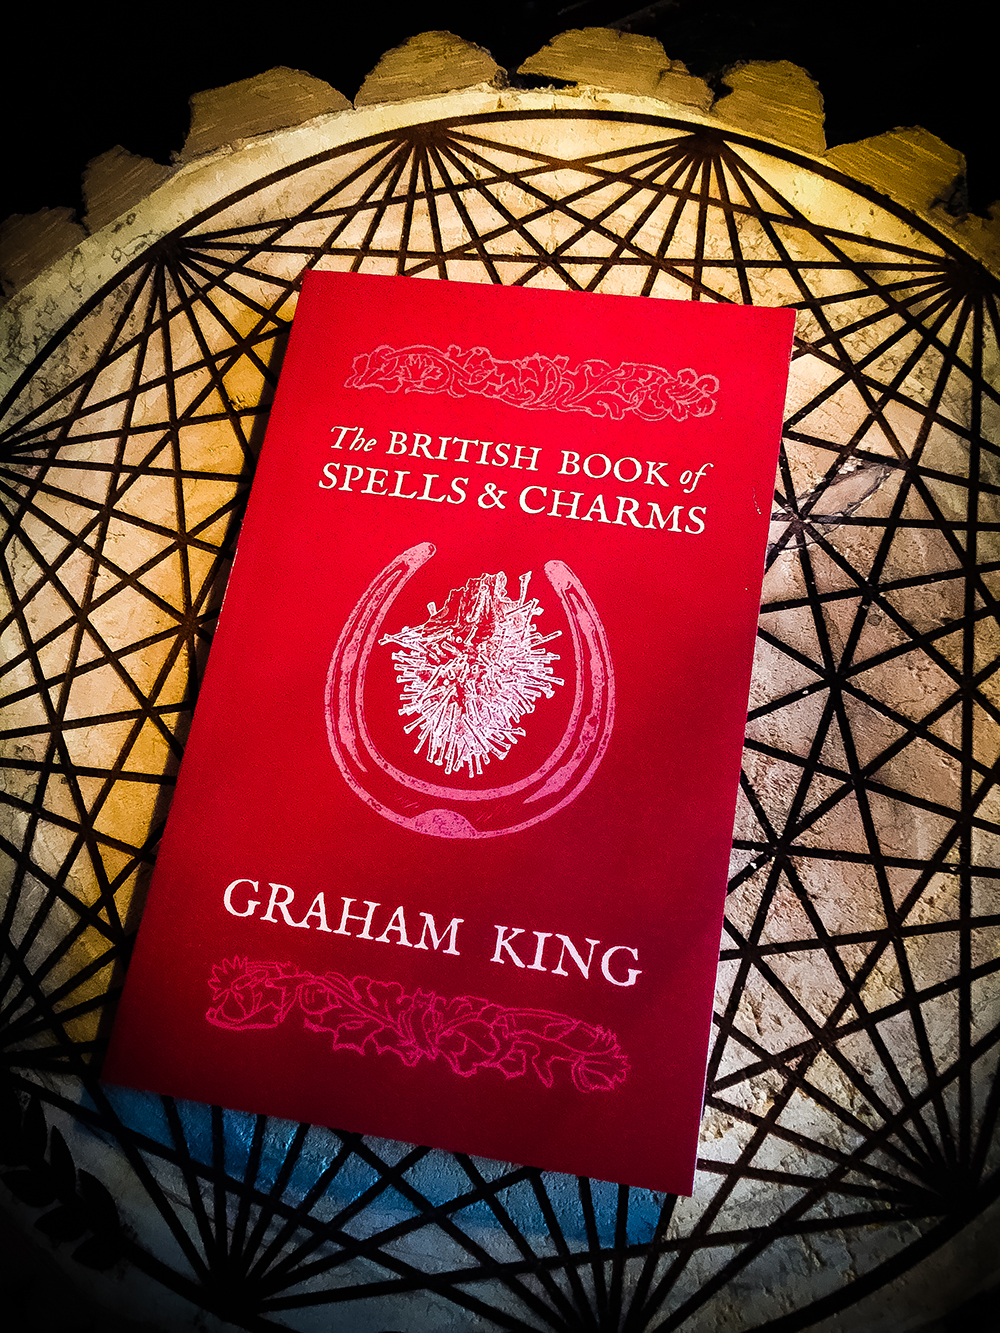 The British Book of Spells and Charms: A Compilation of Traditional Folk Magic